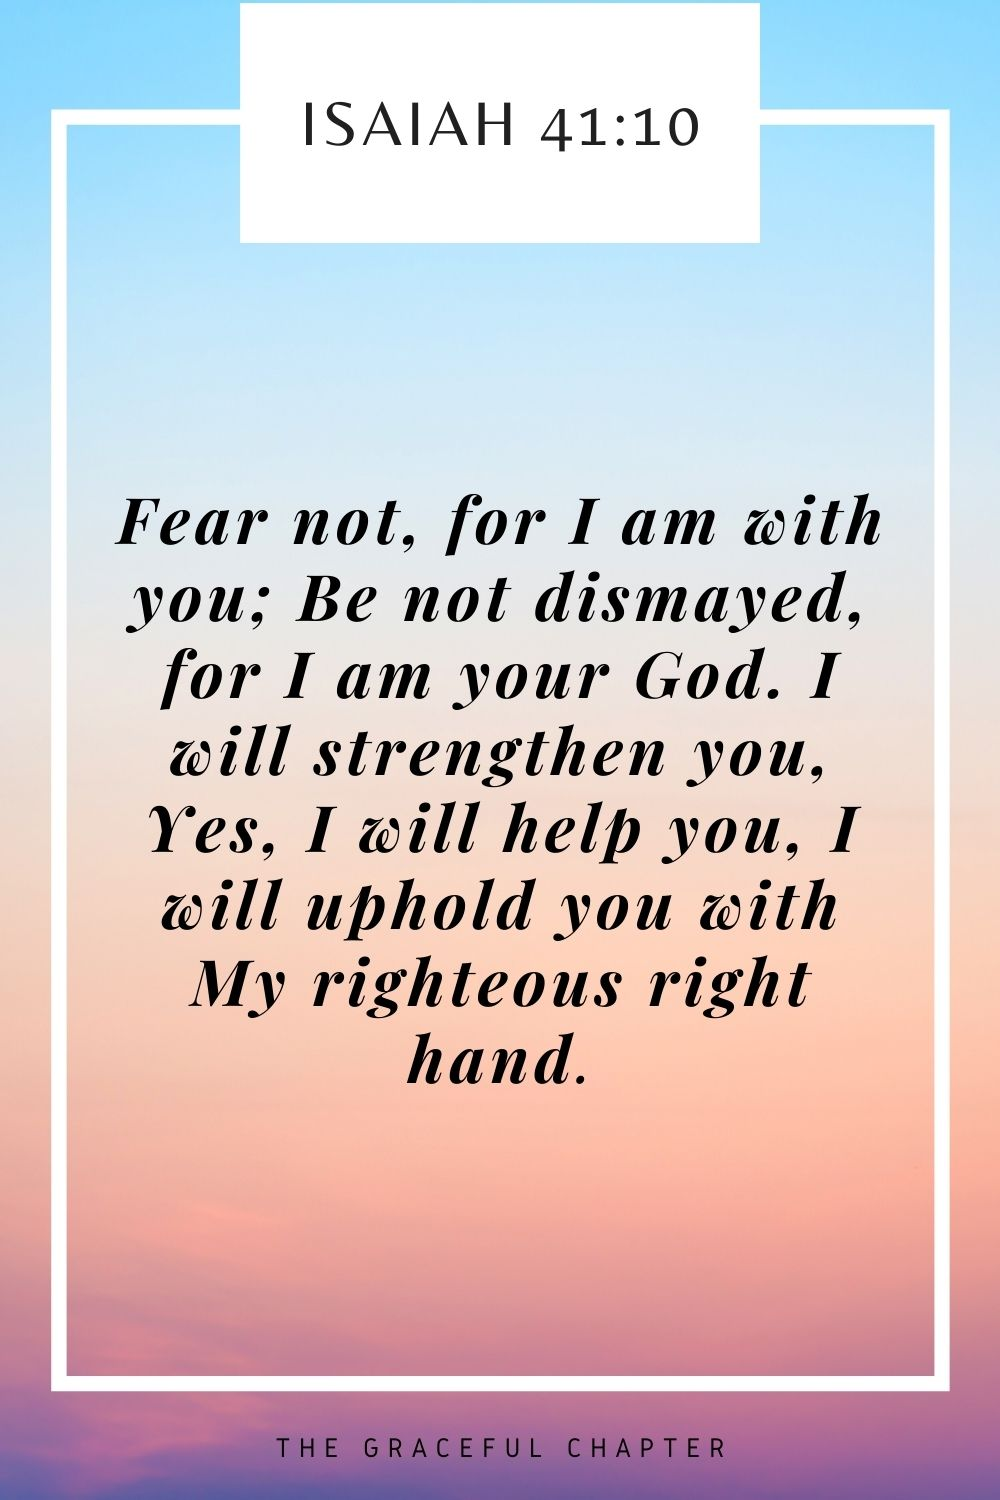 Fear not, for I am with you; Be not dismayed, for I am your God. I will strengthen you, Yes, I will help you, I will uphold you with My righteous right hand. Isaiah 41:10